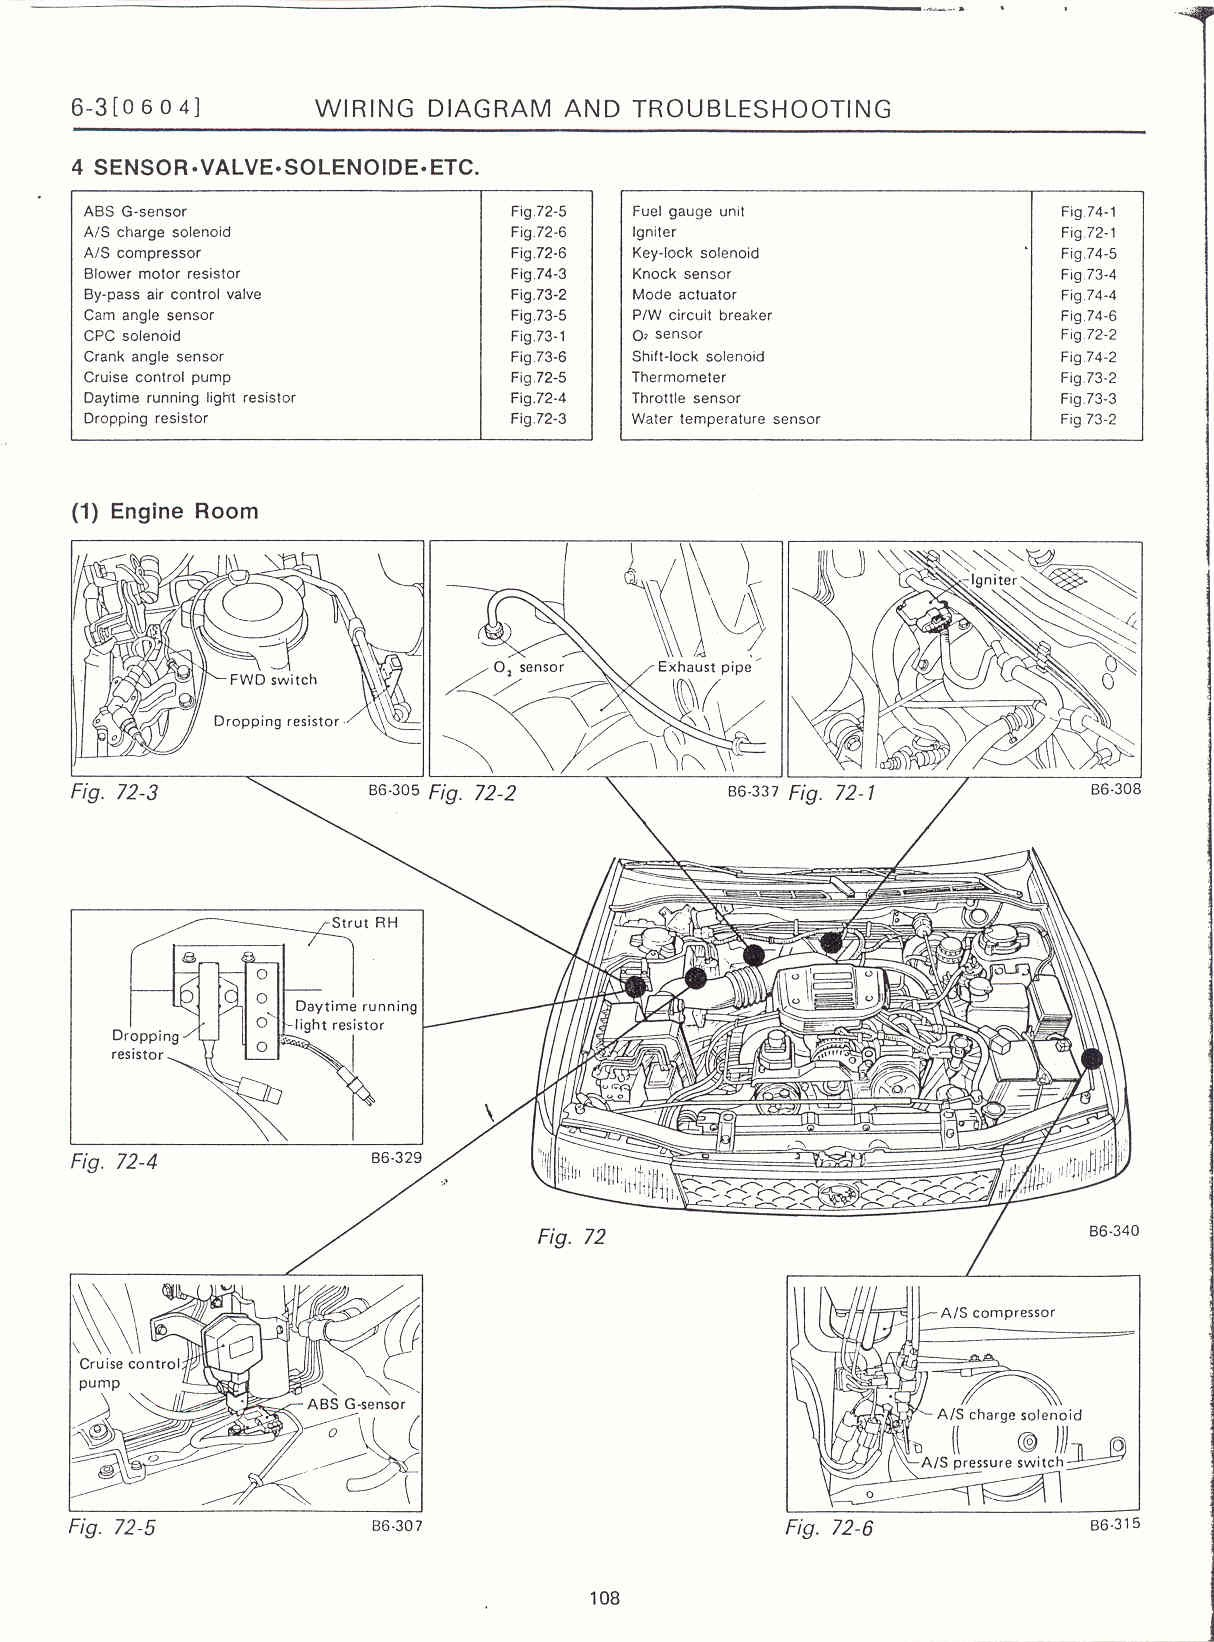 Diagram  2002 Subaru Wrx Exhaust Diagram Full Version Hd Quality Exhaust Diagram